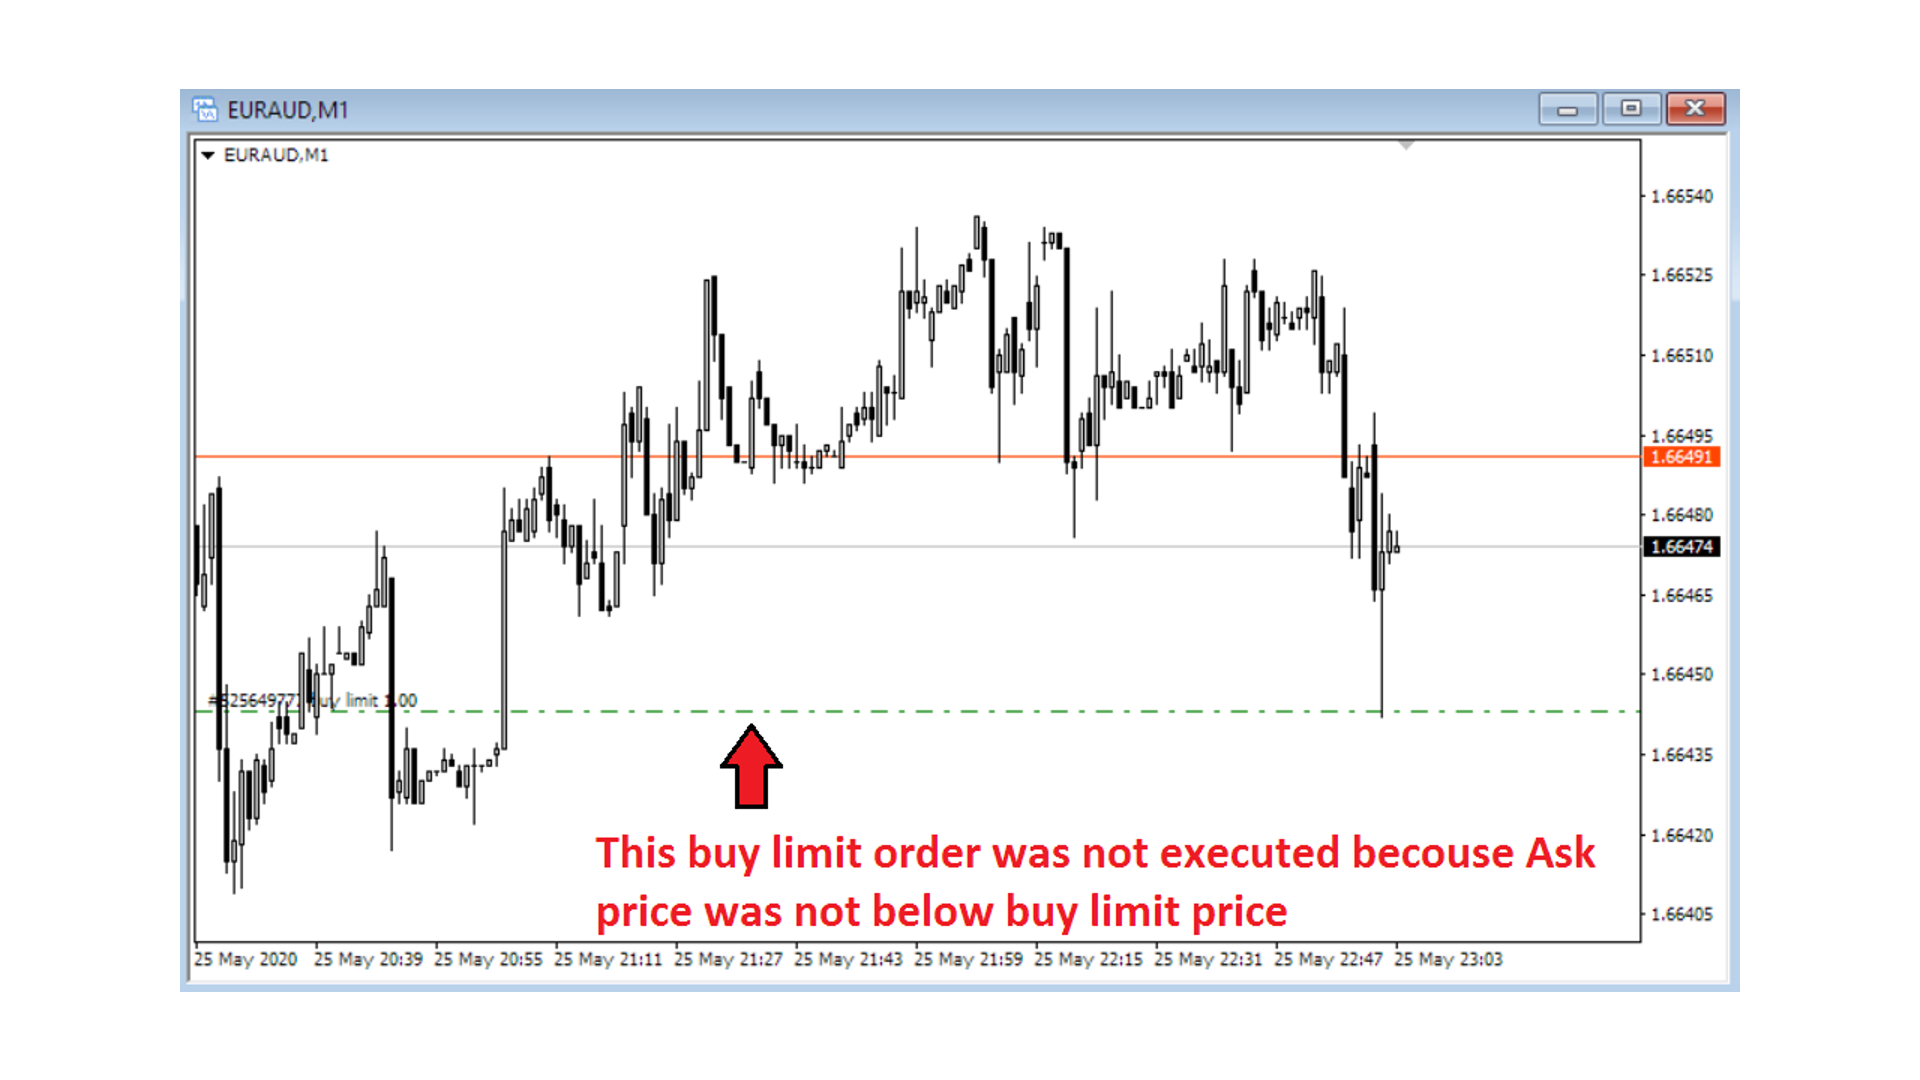 mt4 order execution bid ask price